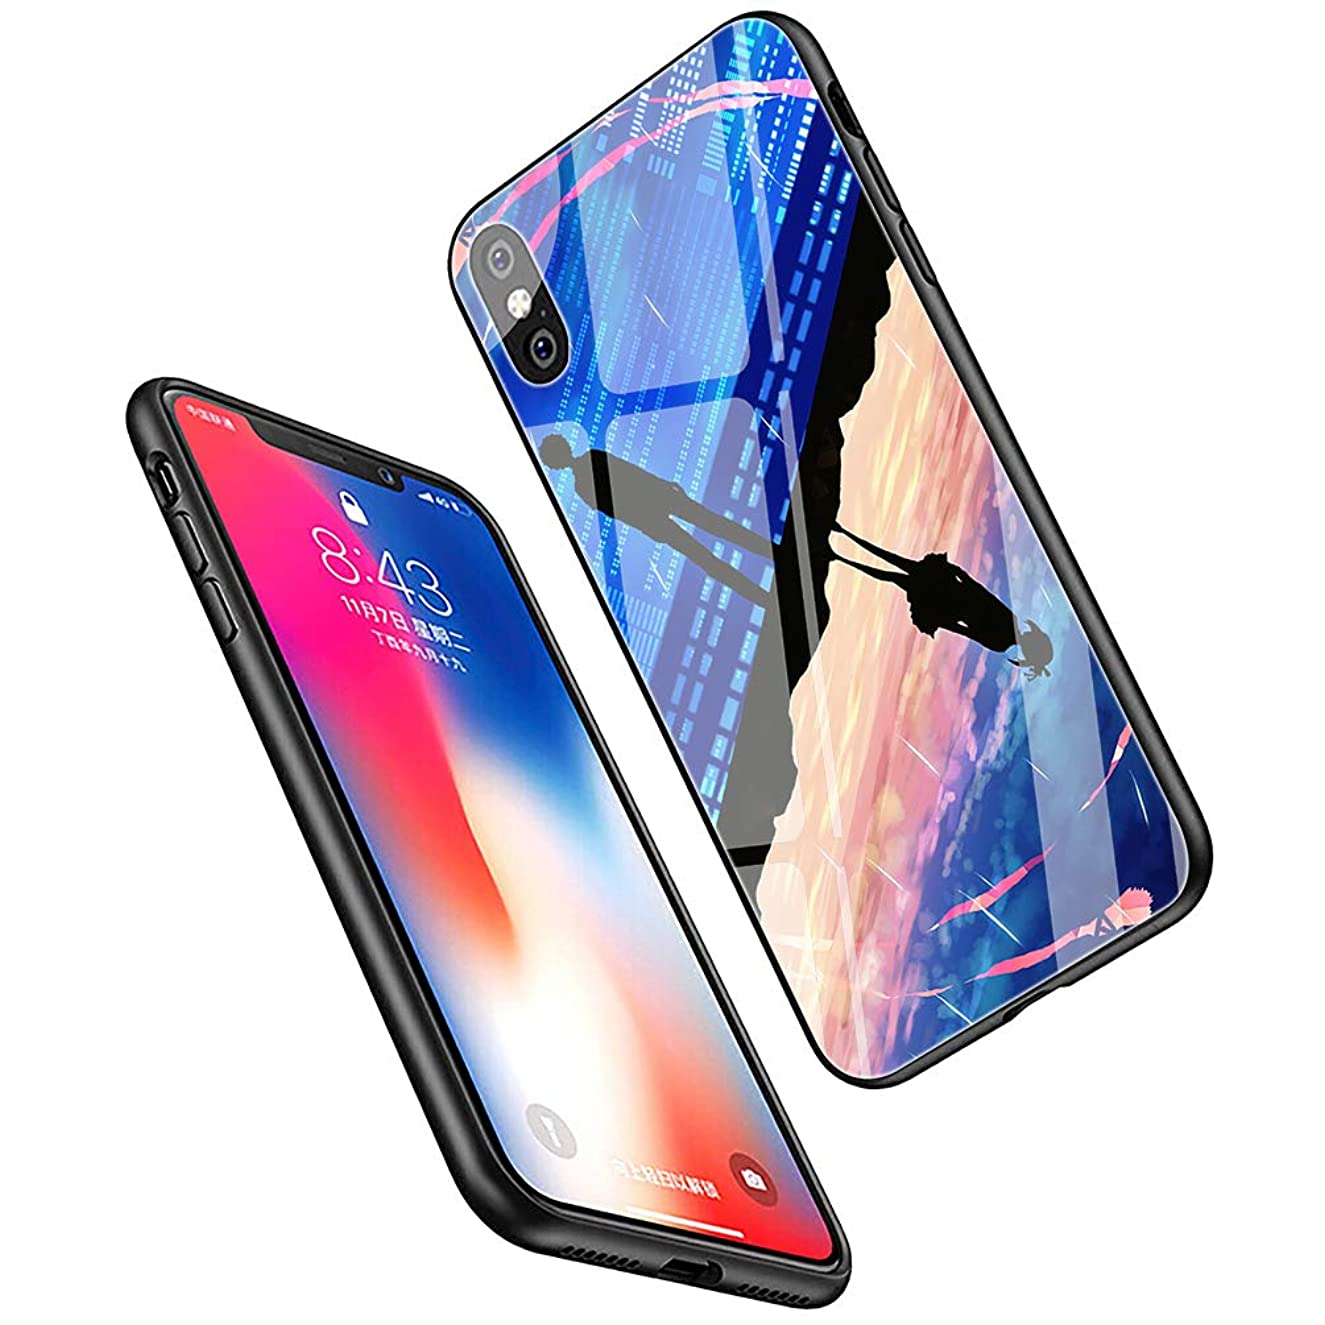 LiangChu 9H Tempered Glass iPhone Xs Max Cases, LC-27 Your Name Kiminonawa Design Printing Shockproof Anti-Scratch Soft Silicone TPU Cover Phone Case for Apple iPhone Xs Max